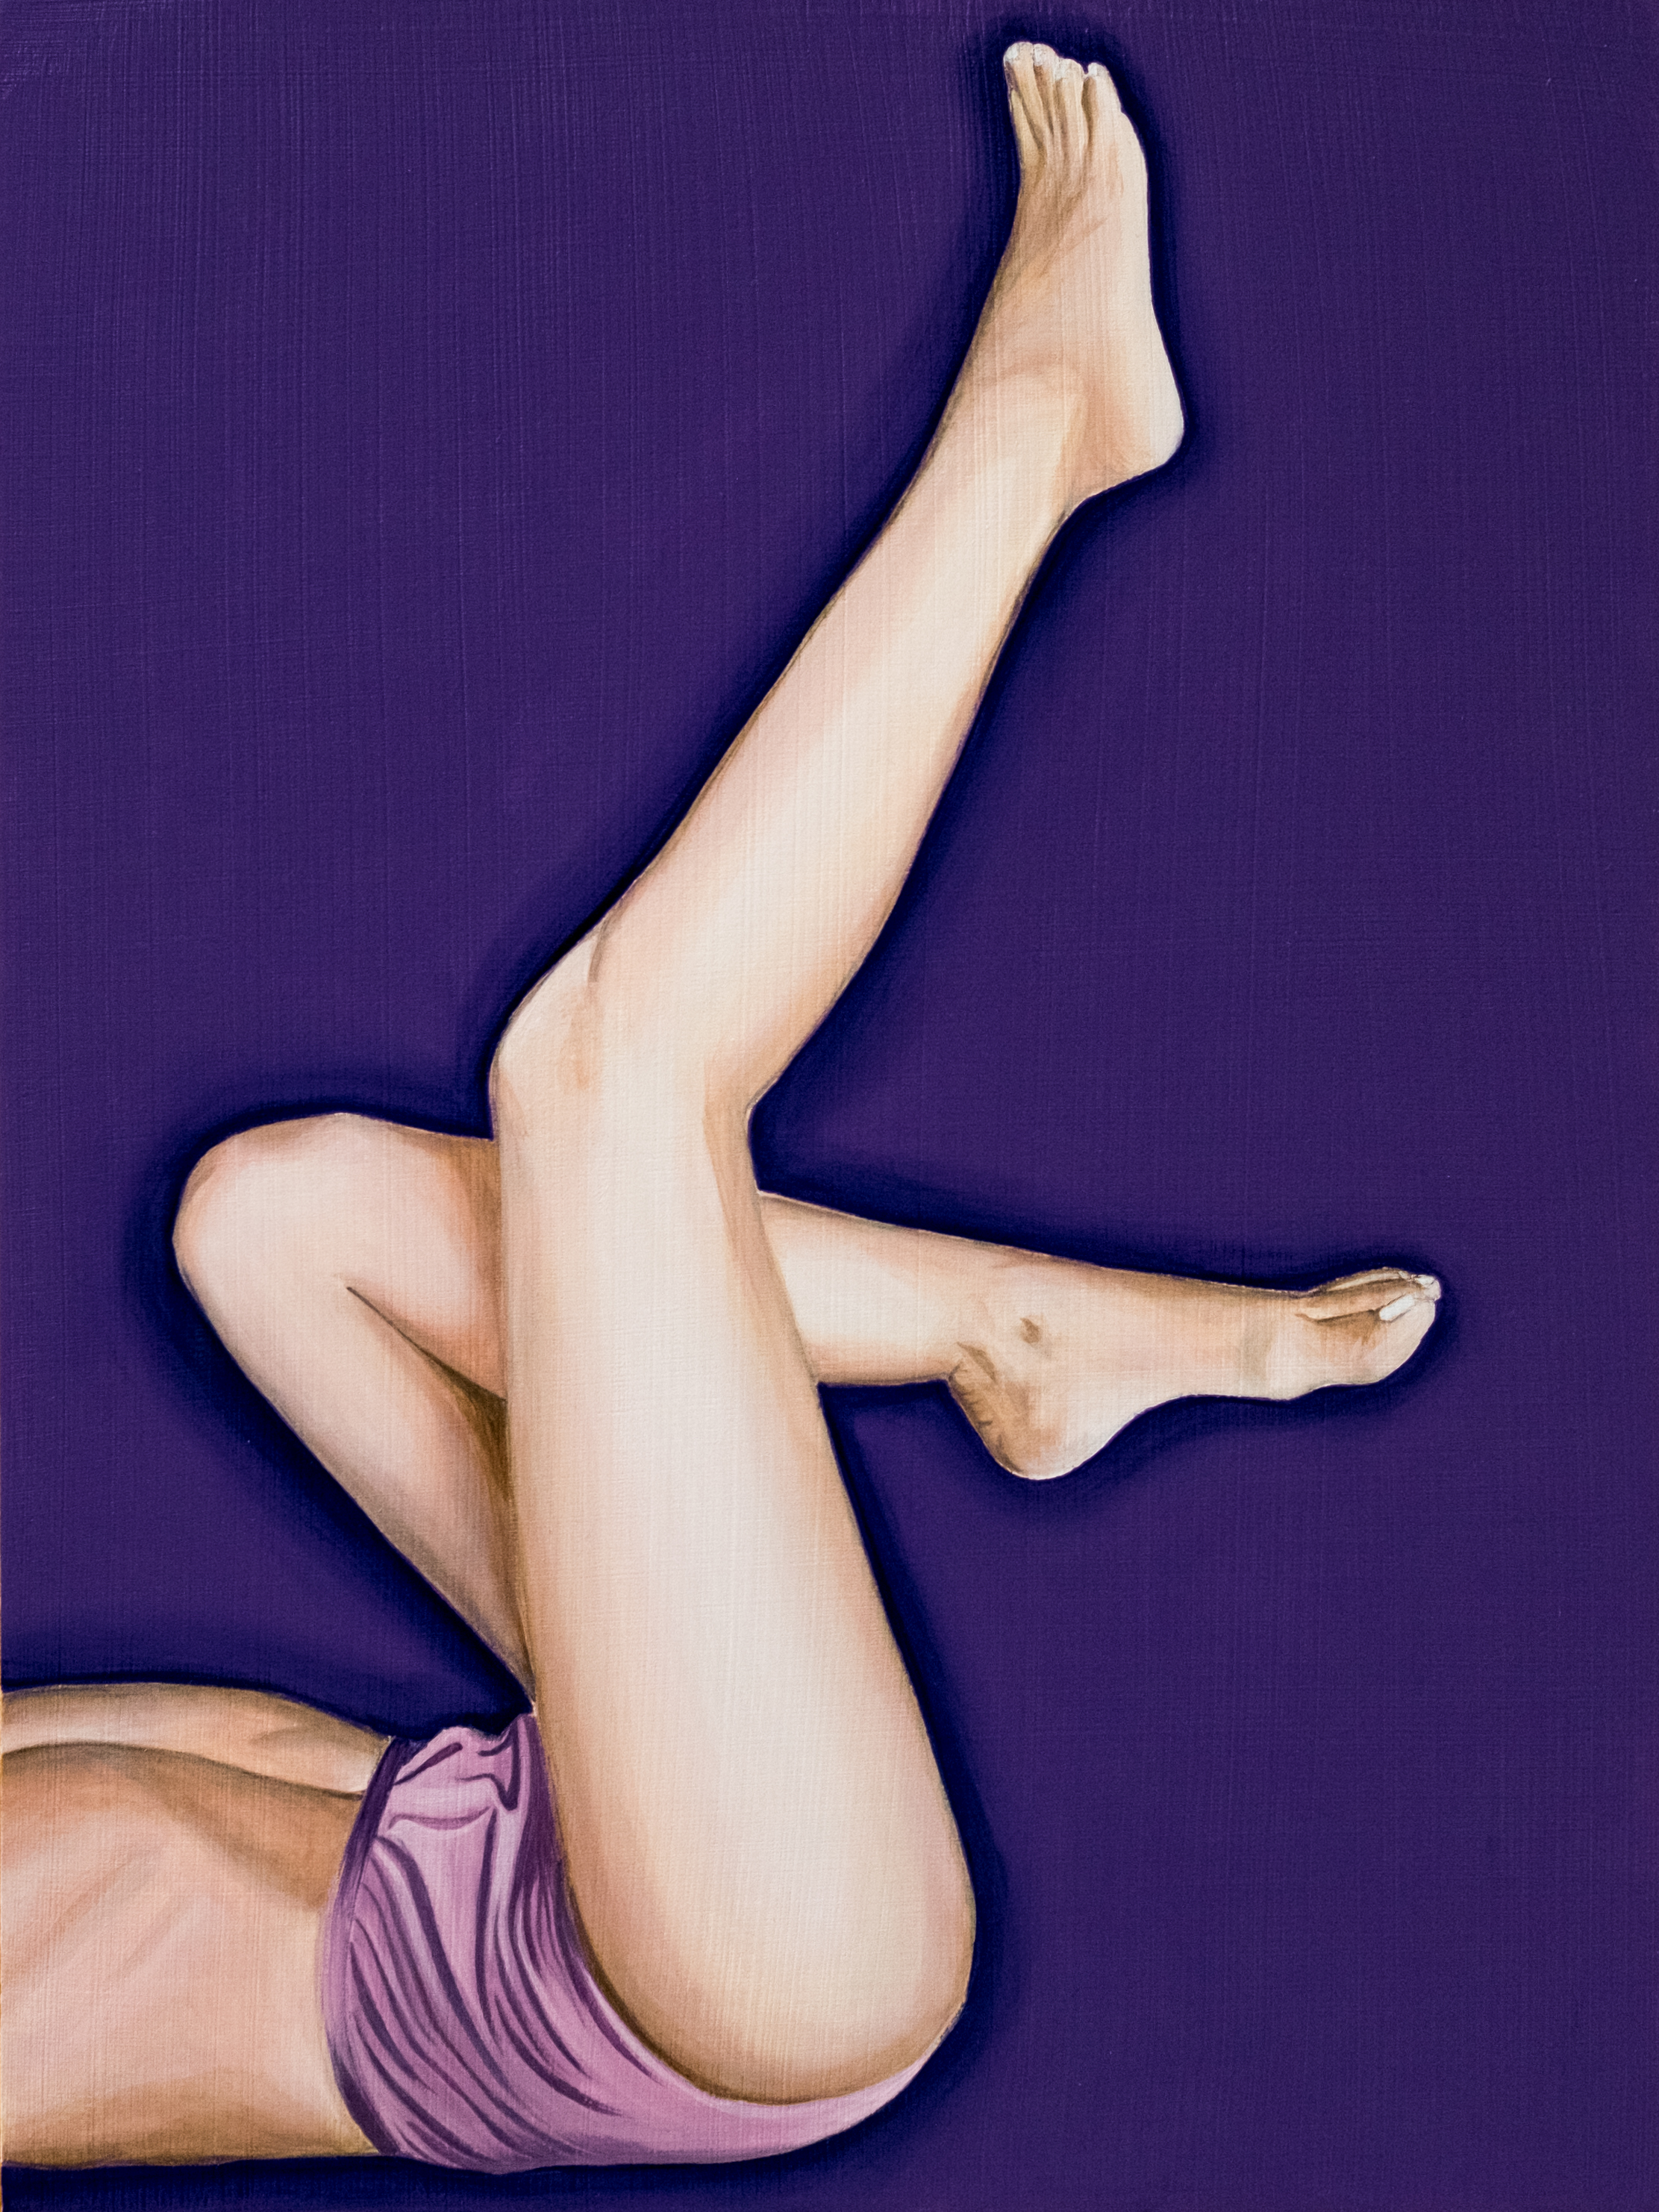 legs in the air- Curious Darling - J Danielle Wehunt